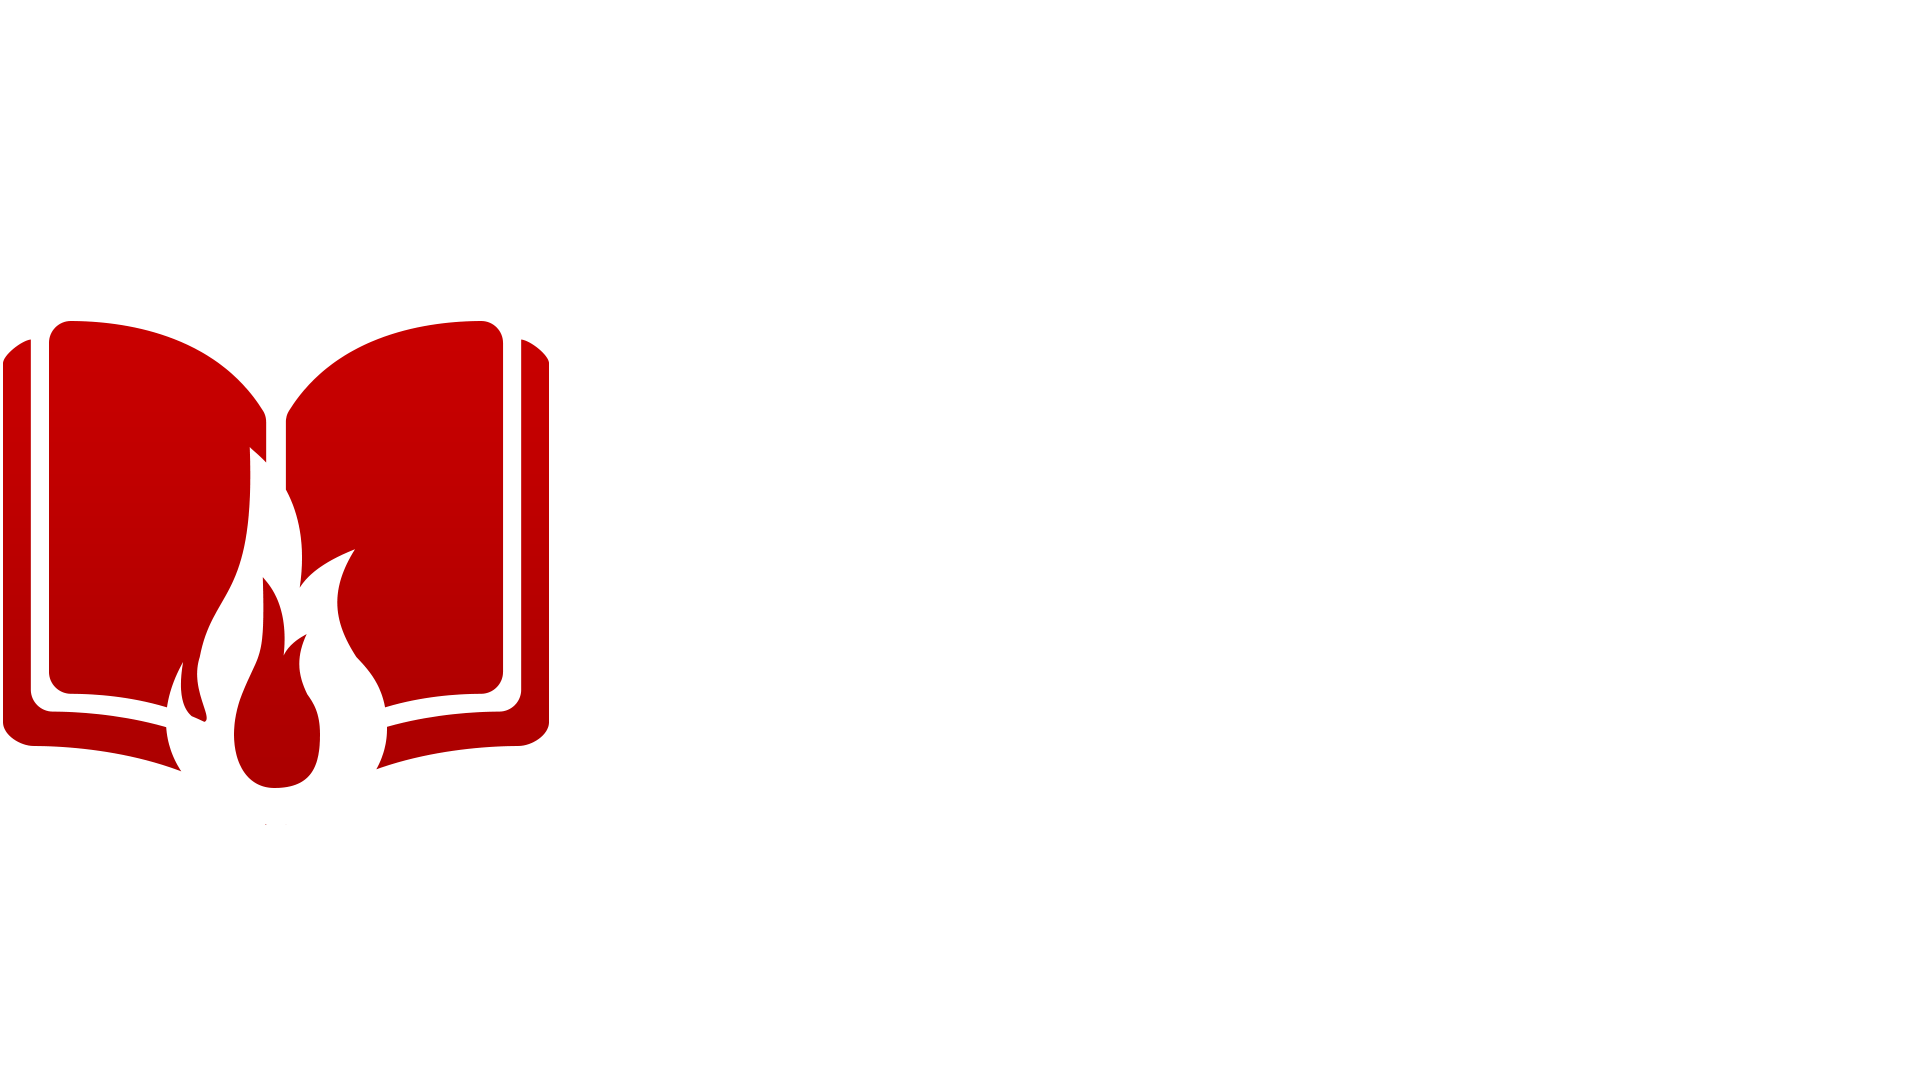 Bible Training Institute - The Church of God, International Offices